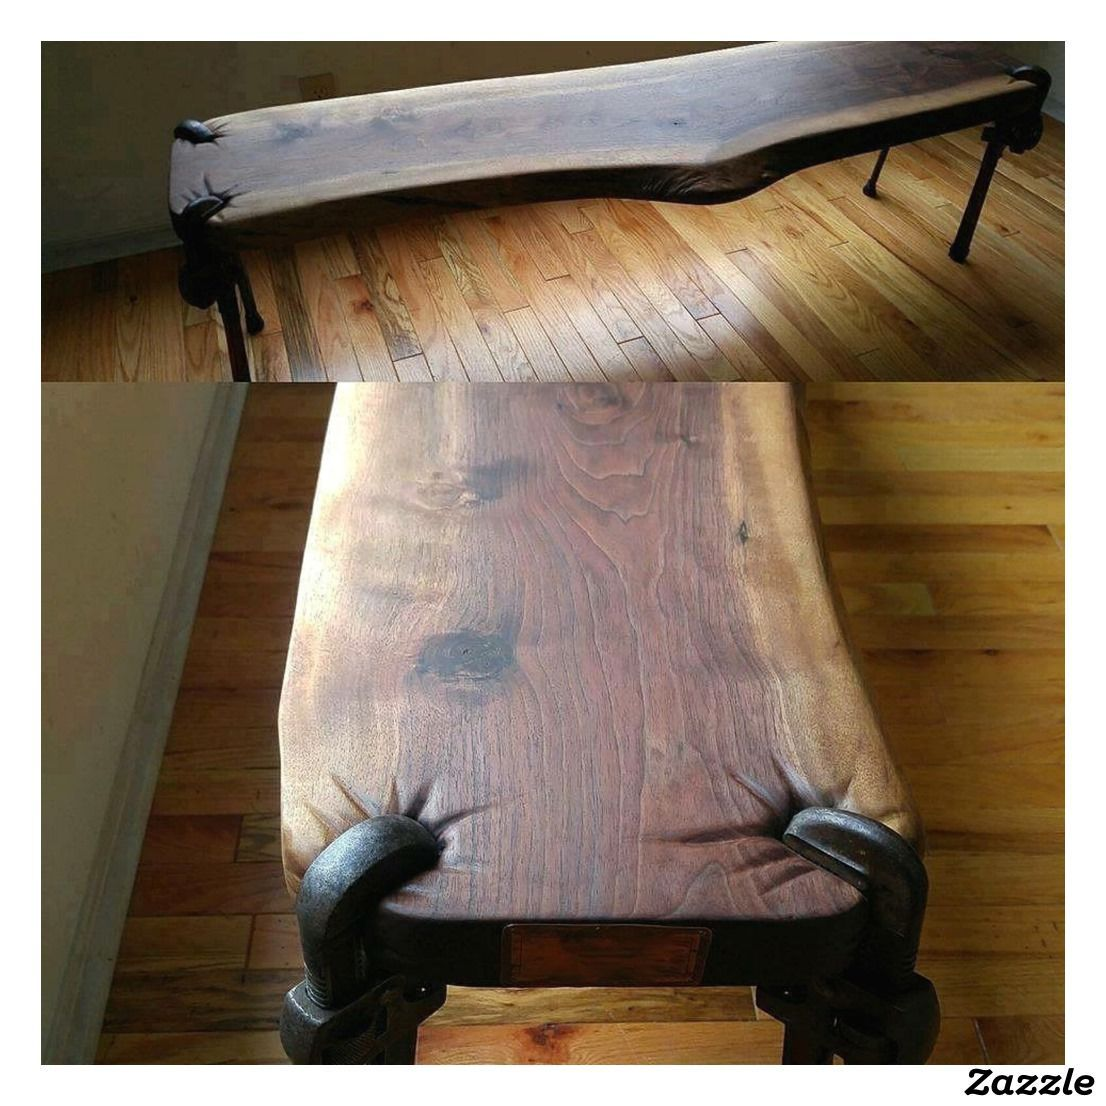 Rustic handcrafted pipe wrench wwood coffee table in